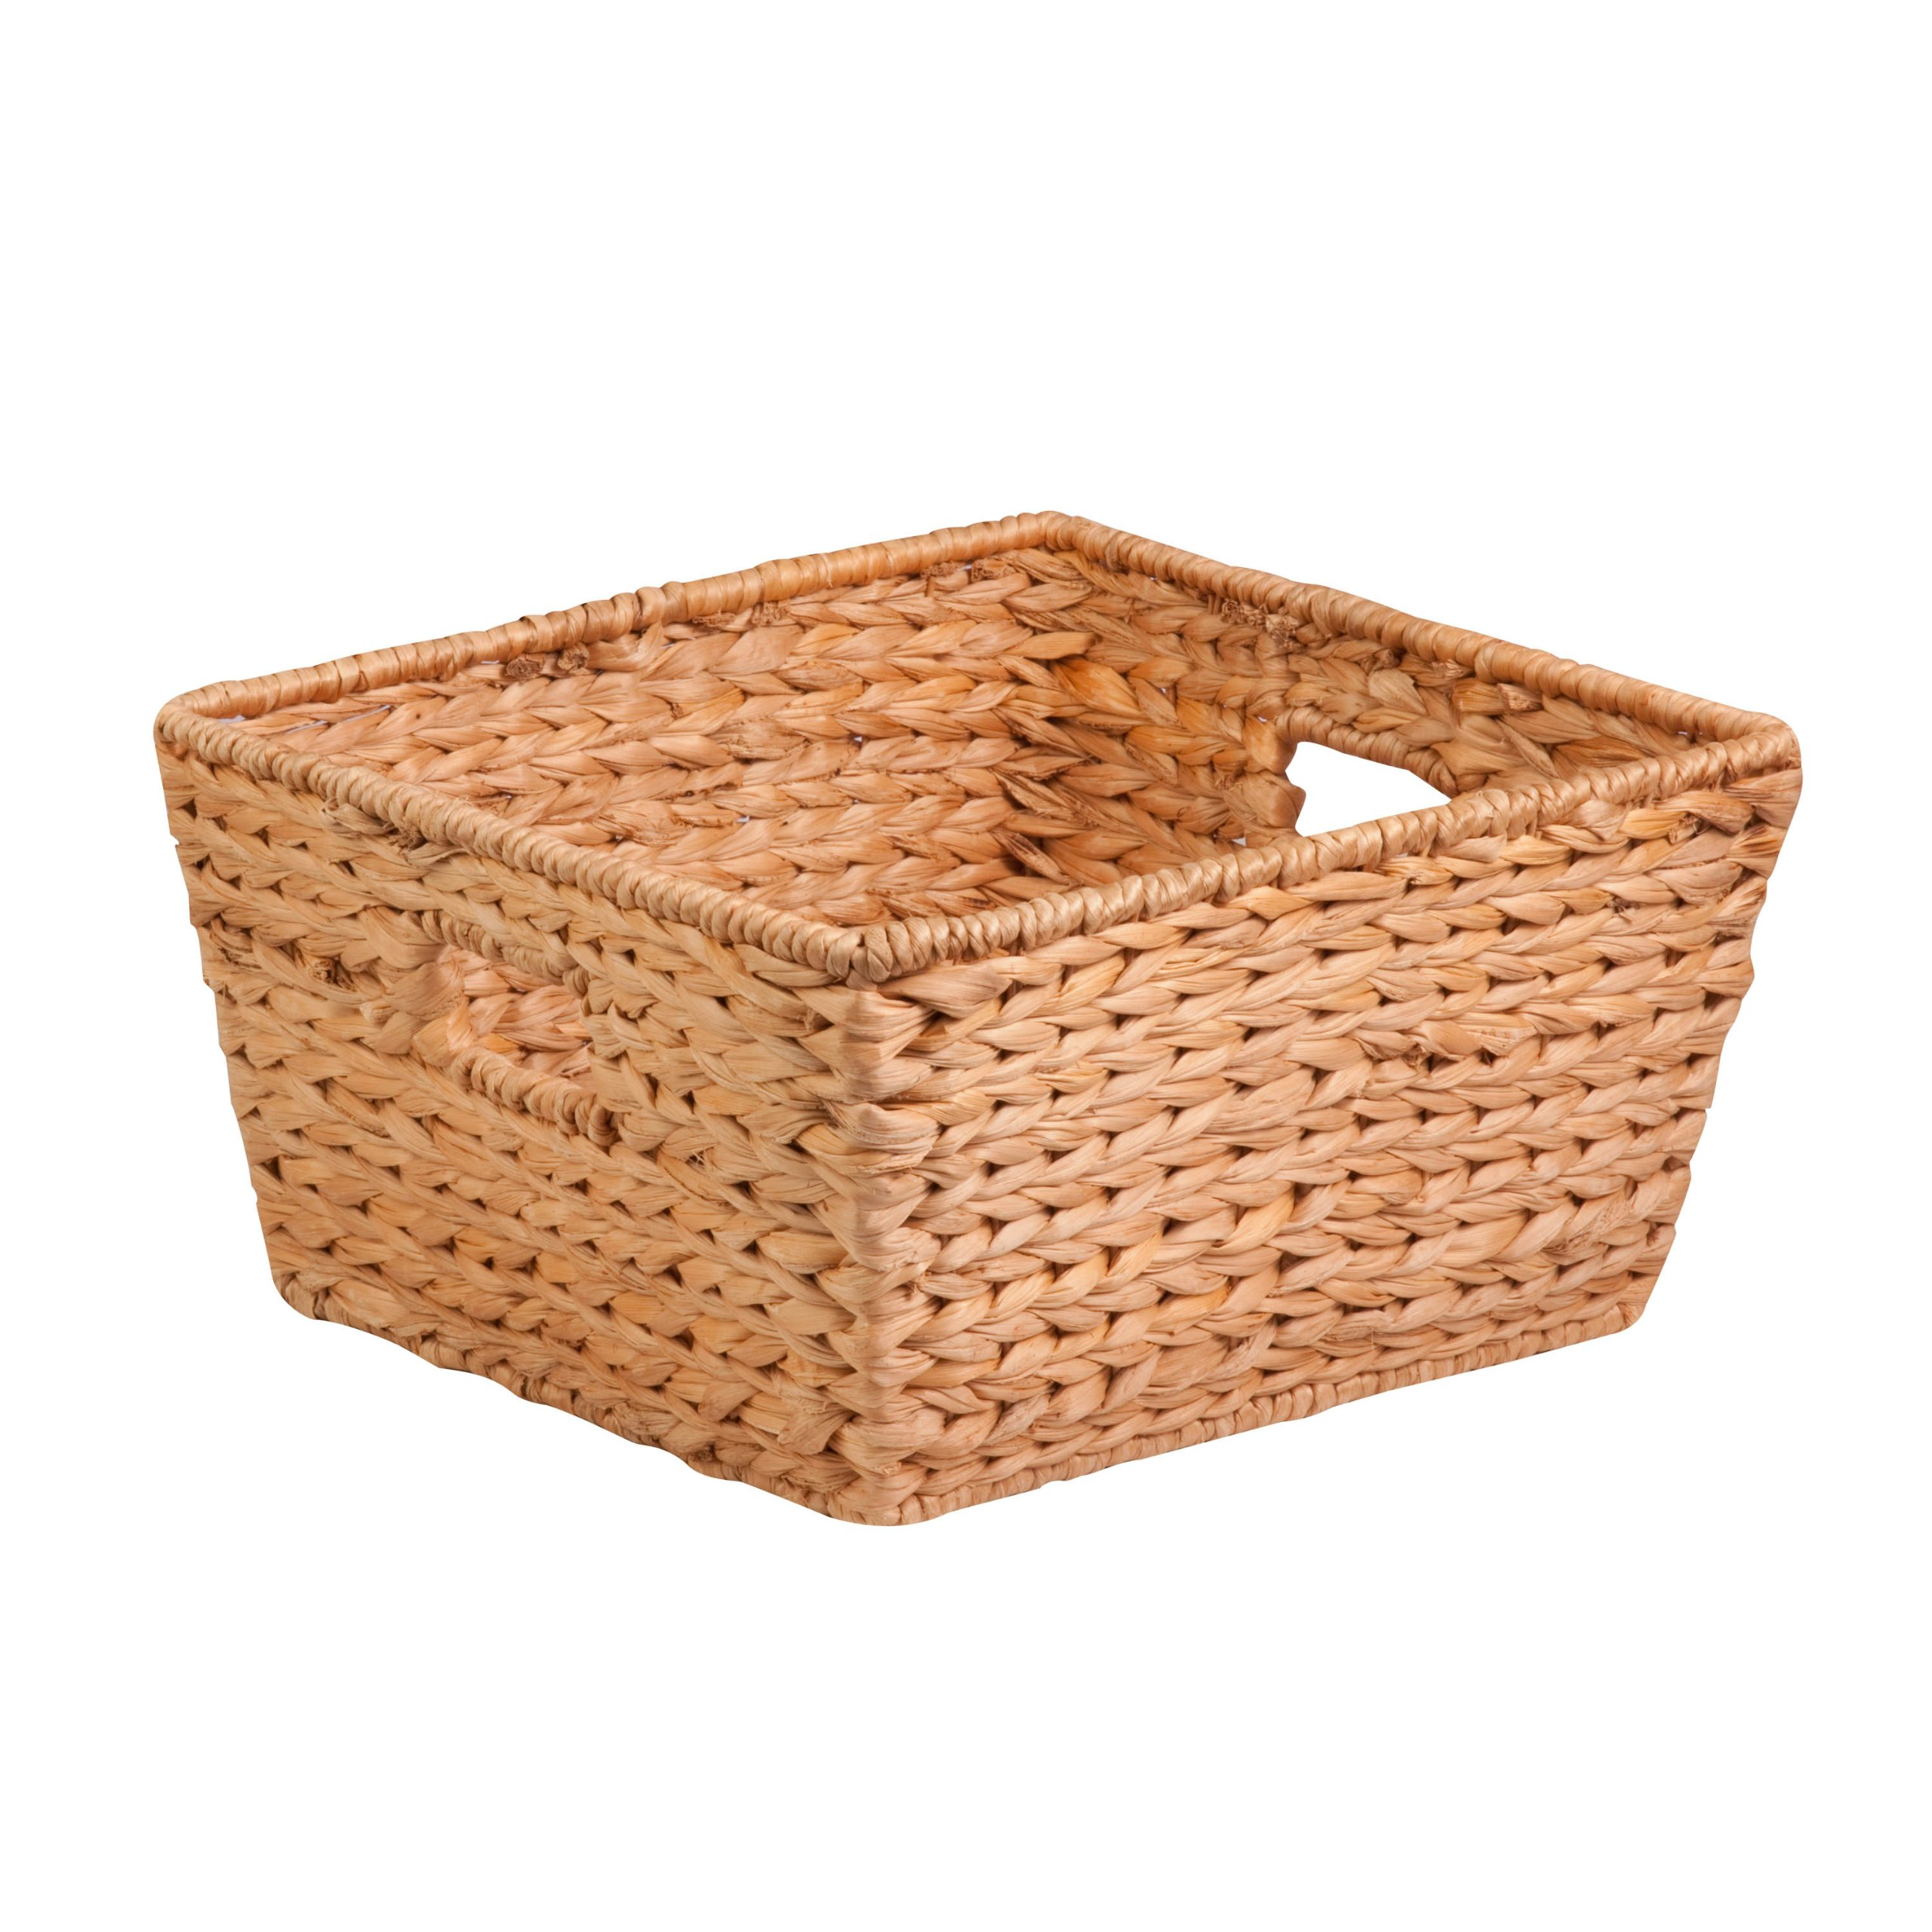 Honey-Can-Do STO-02885 Tall Water Hyacinth Basket Bin, Large, 15 L x 15 W x 8 H